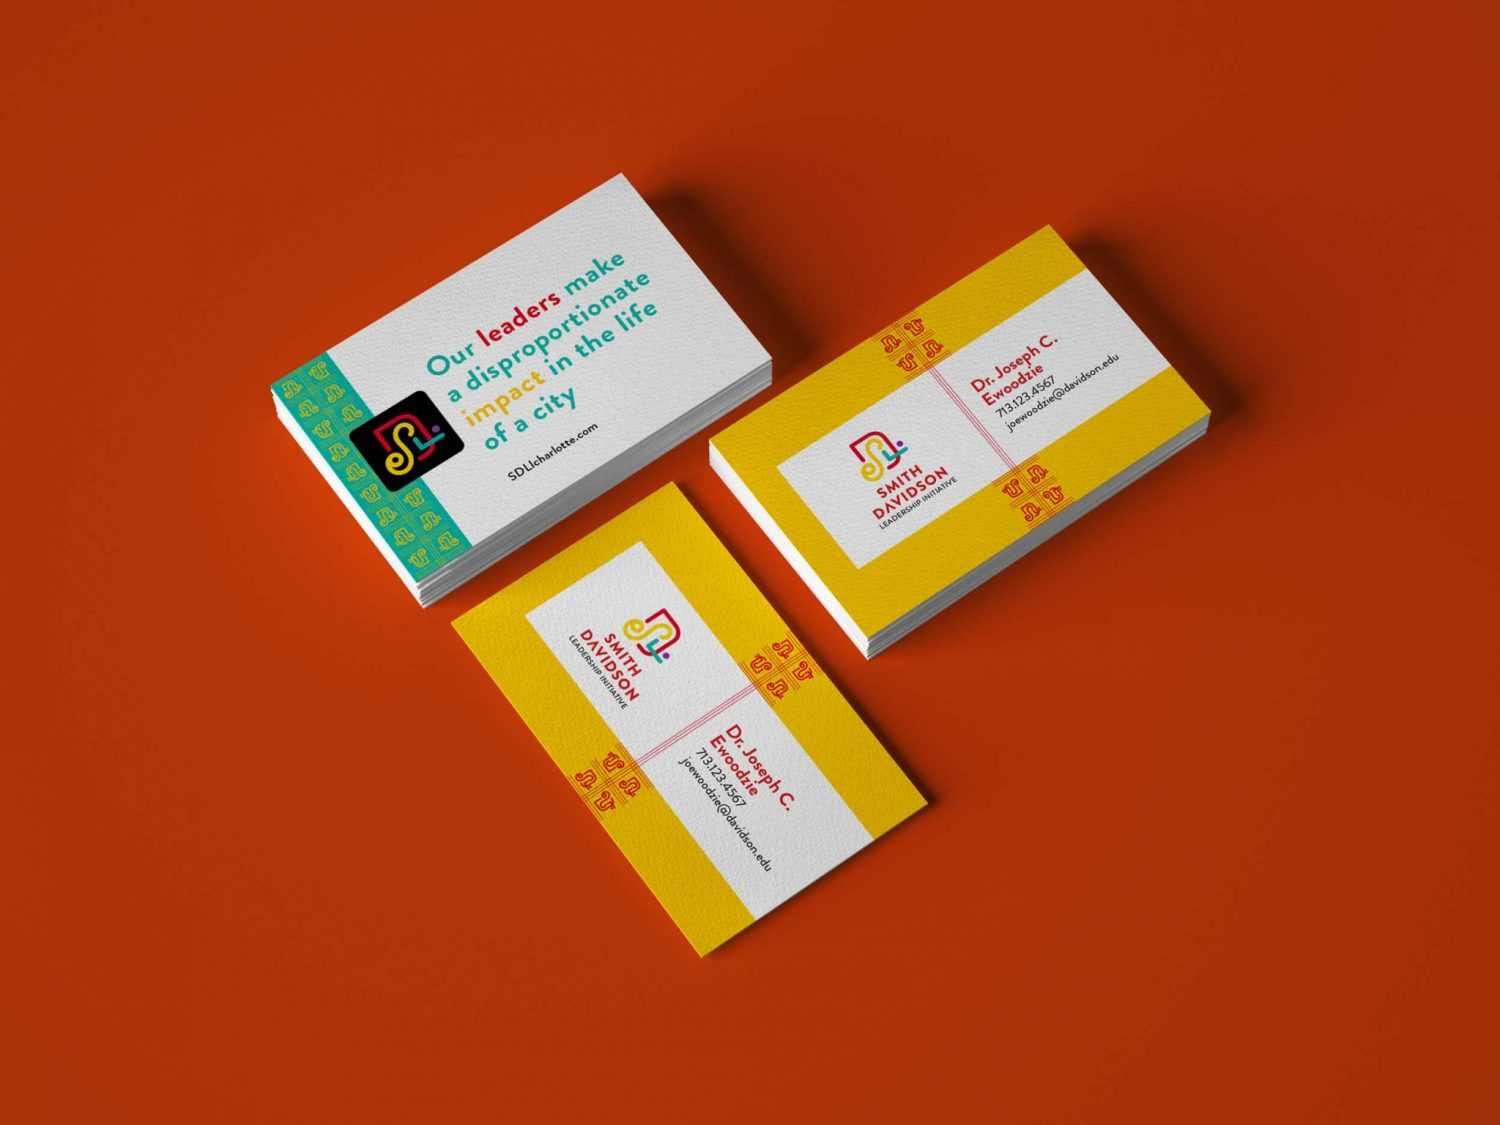 Smith Davidson Leadership Initiative branding and business card design by Nicte Creative Design